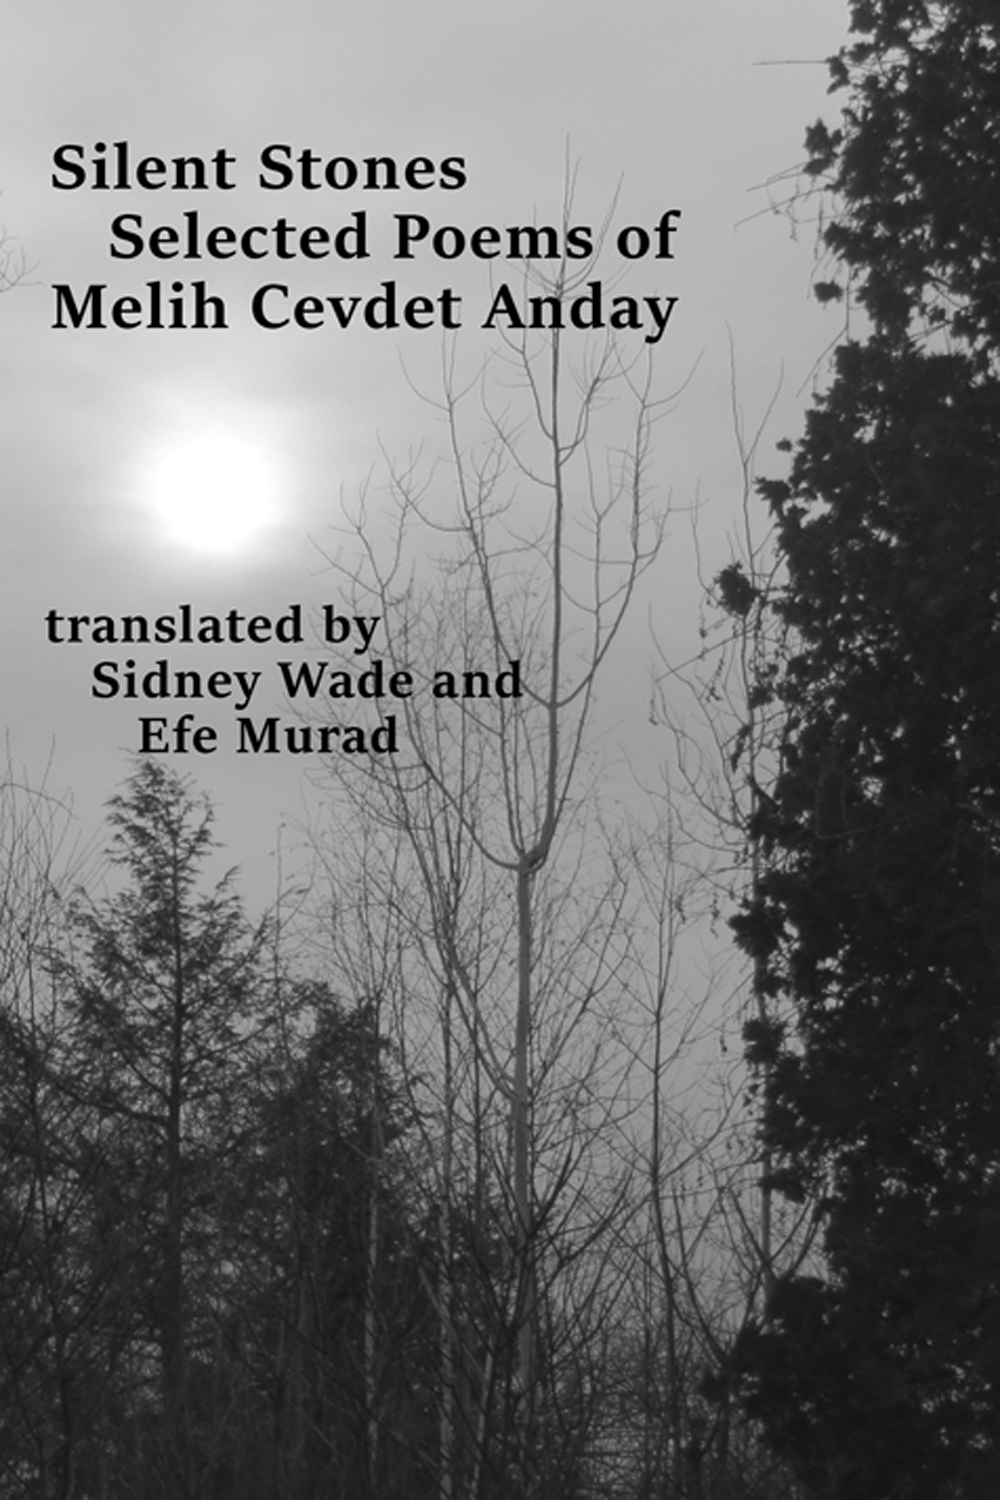 Silent Stones: Selected Poems Of Melih Cevdet Anday